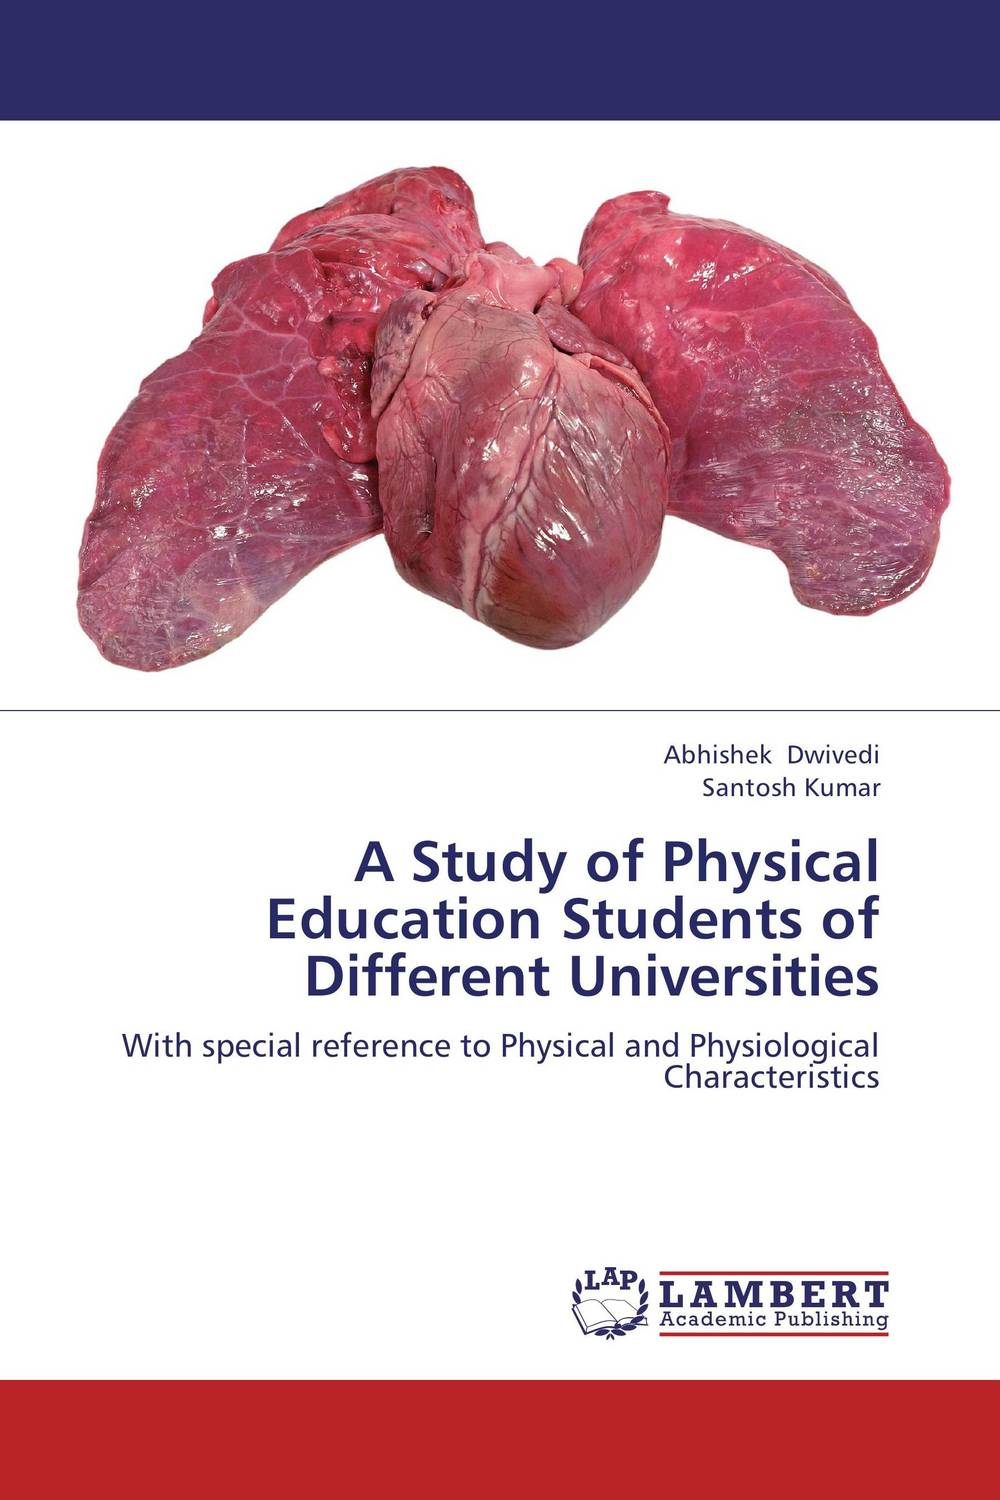 A Study of Physical Education Students of Different Universities belousov a security features of banknotes and other documents methods of authentication manual денежные билеты бланки ценных бумаг и документов